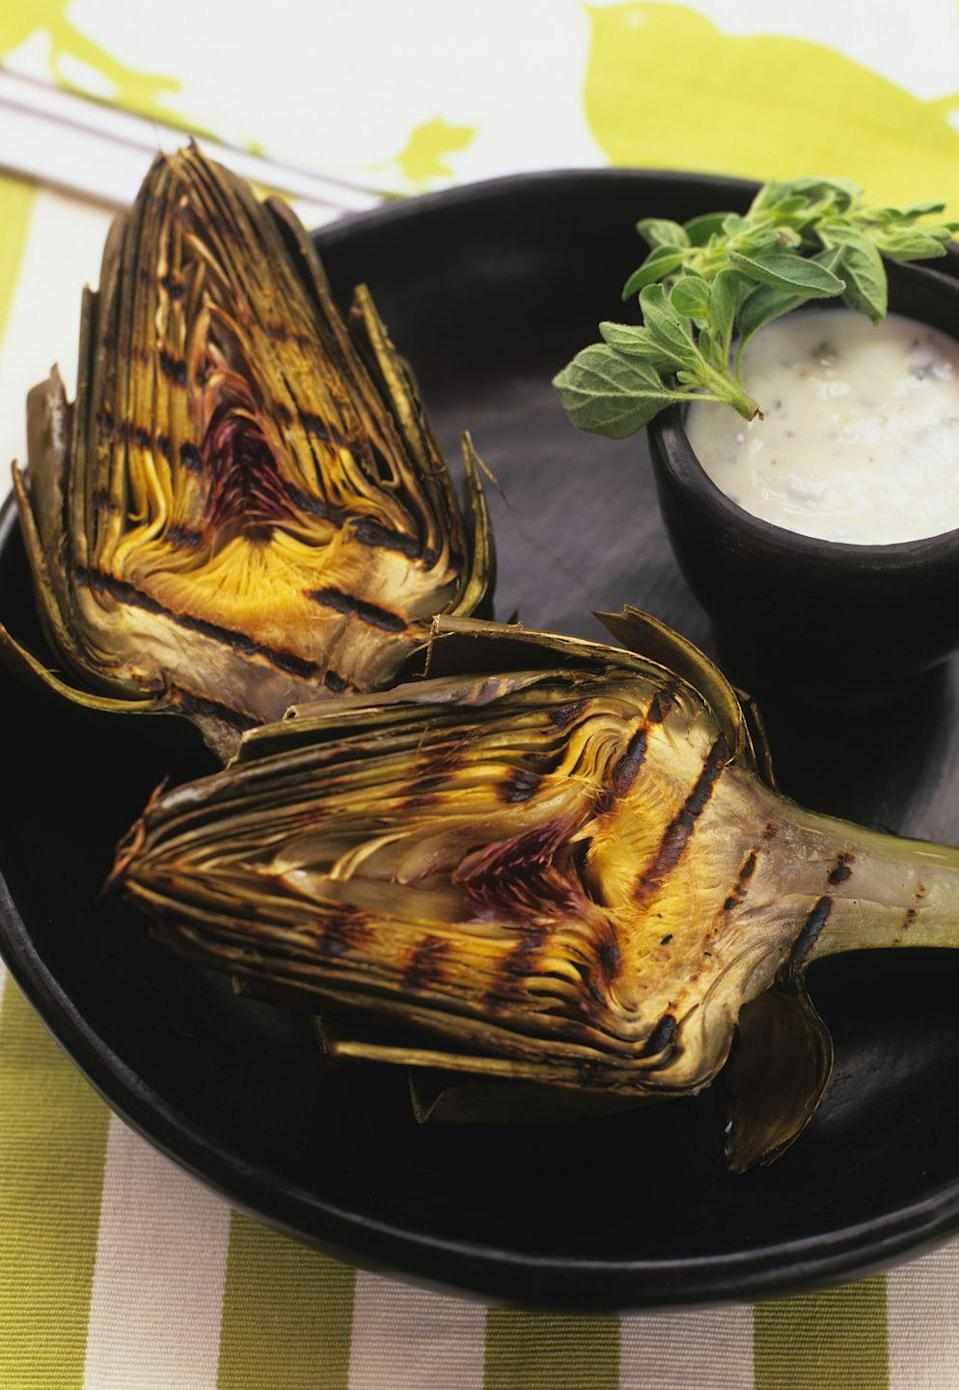 """<p>Who knew artichokes could look so scrumptious? Everyone will know you did when this tray is carried into the room. </p><p><strong><a href=""""https://www.countryliving.com/food-drinks/recipes/a1216/grilled-artichokes-creamy-butter-dip-3322/"""" rel=""""nofollow noopener"""" target=""""_blank"""" data-ylk=""""slk:Get the recipe"""" class=""""link rapid-noclick-resp"""">Get the recipe</a>.</strong></p>"""